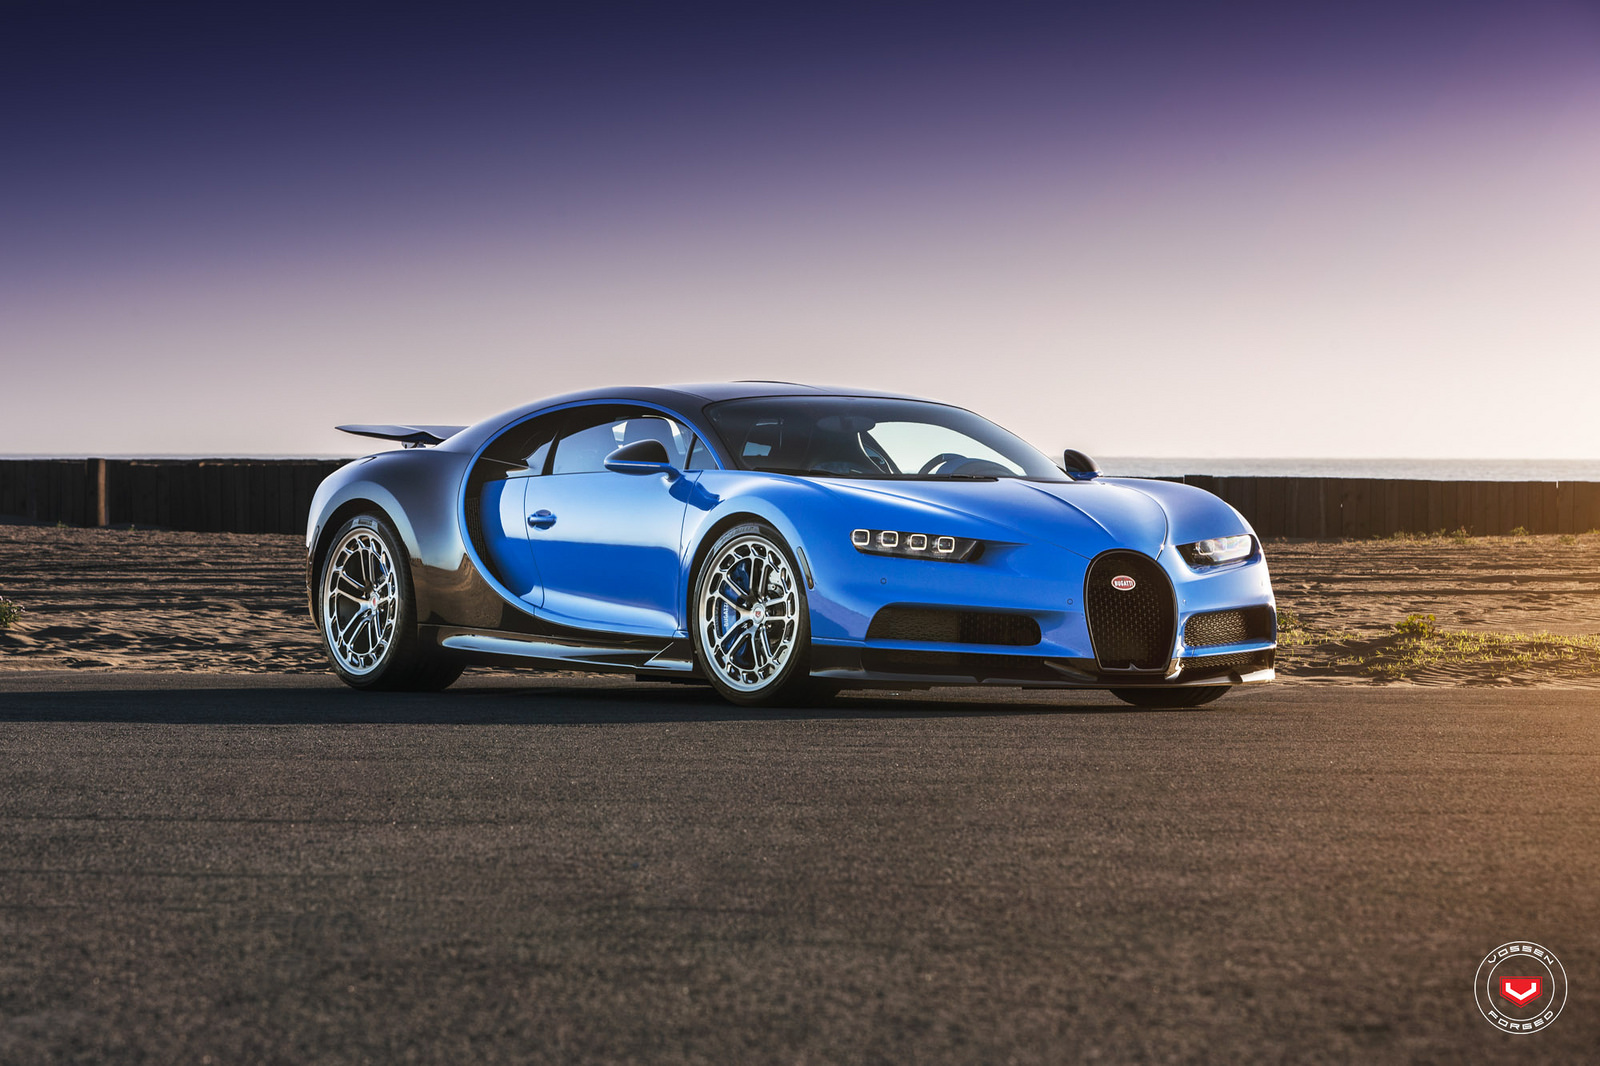 Sieu-xe-Bugatti-Chiron-thoi-mien-nguoi-dung-voi-banh-mam-do-24inch-Vossen-anh-7